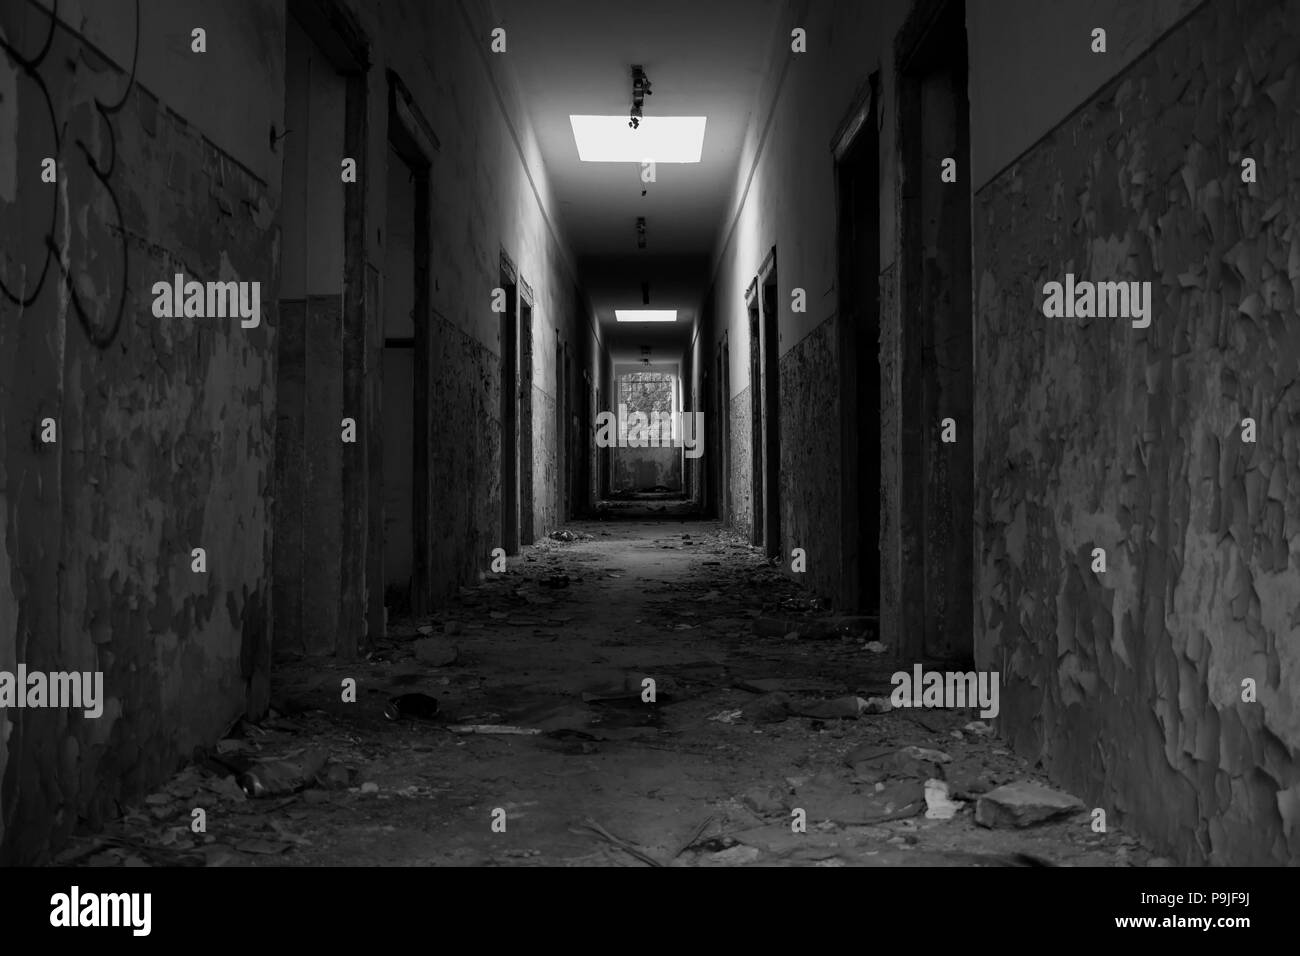 Interior of an abandoned building in black and white - Stock Image